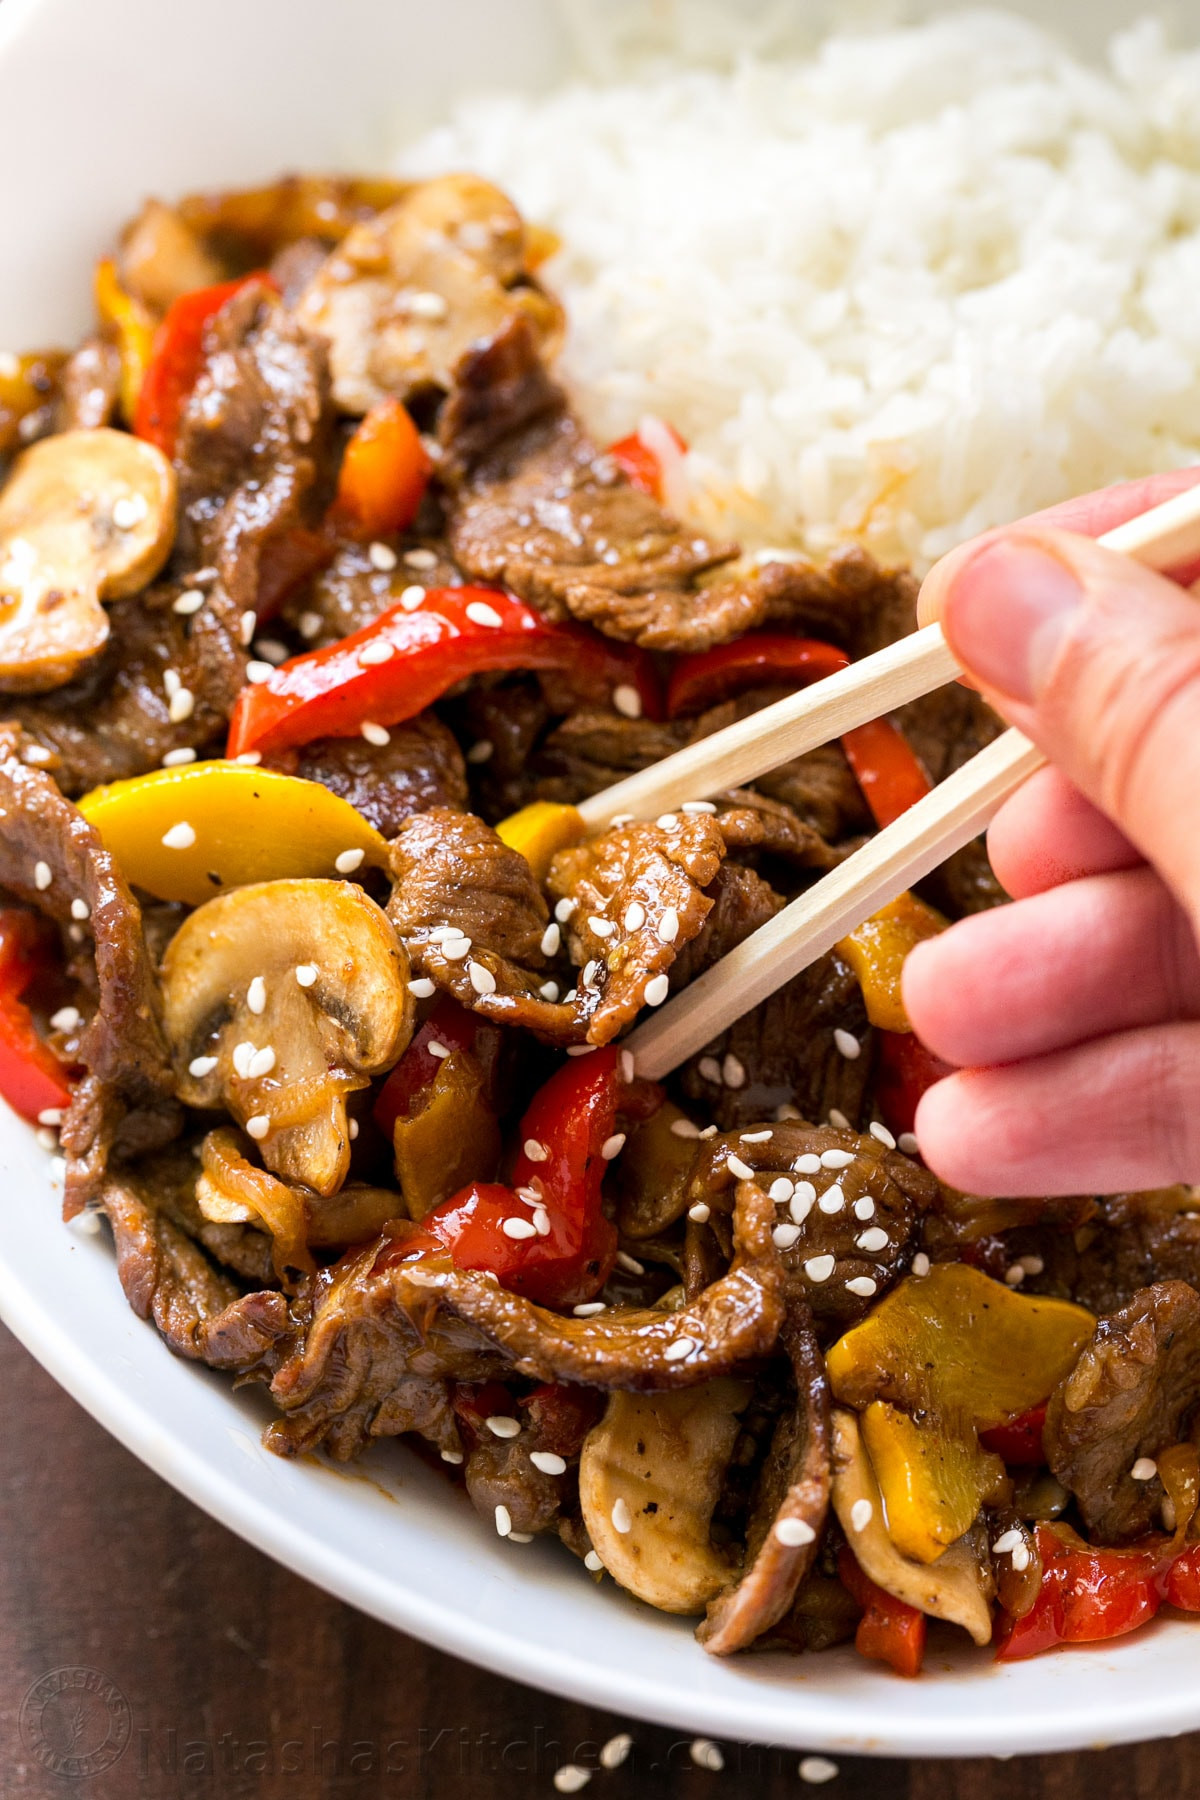 Chinese Stir Fry Recipes  Beef Stir Fry Recipe with 3 Ingre nt Sauce